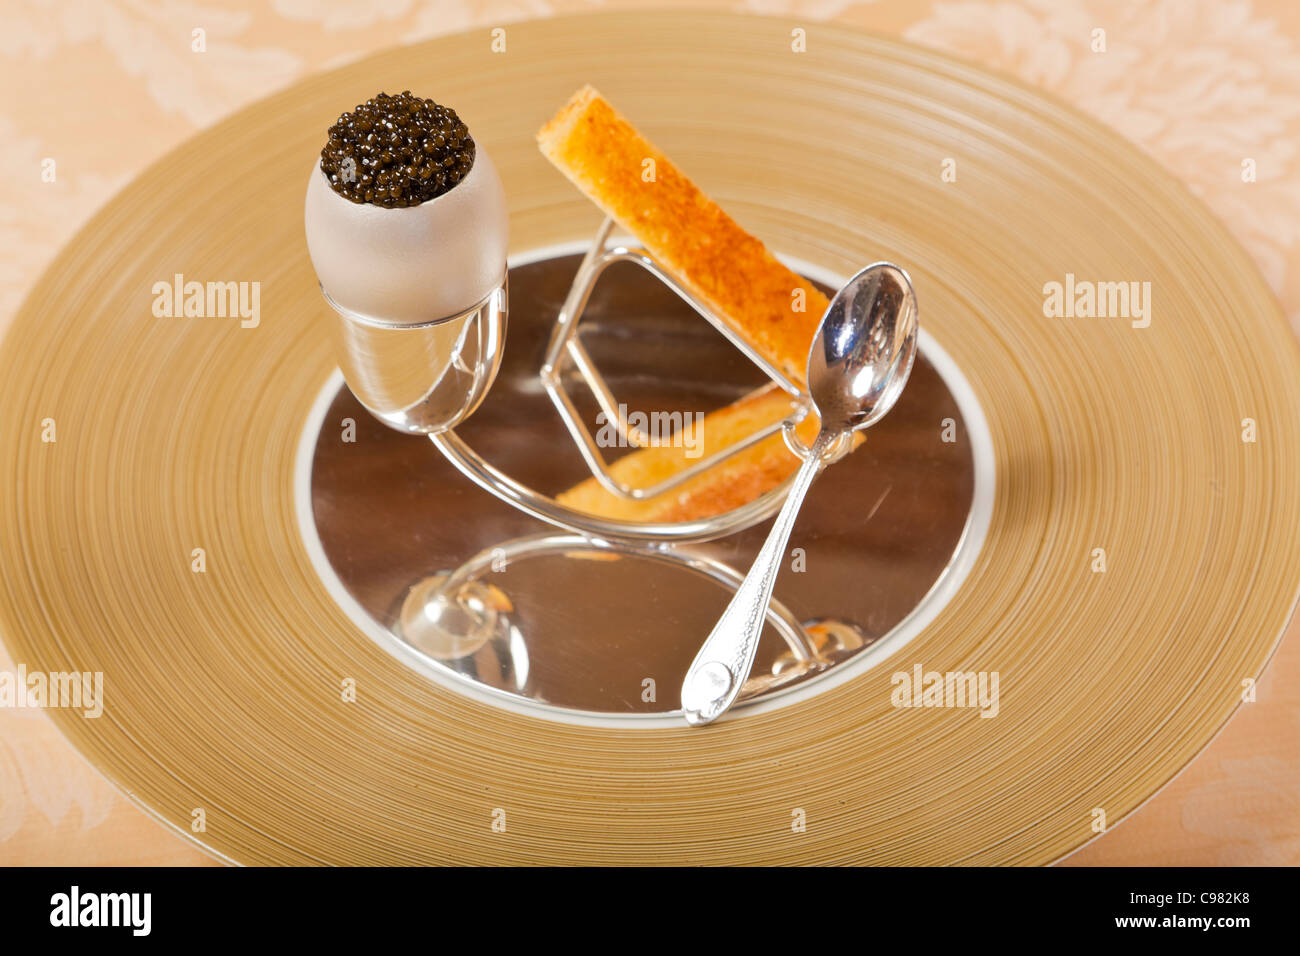 Caviar with egg, garnished with a crusty finger of bread. - Stock Image